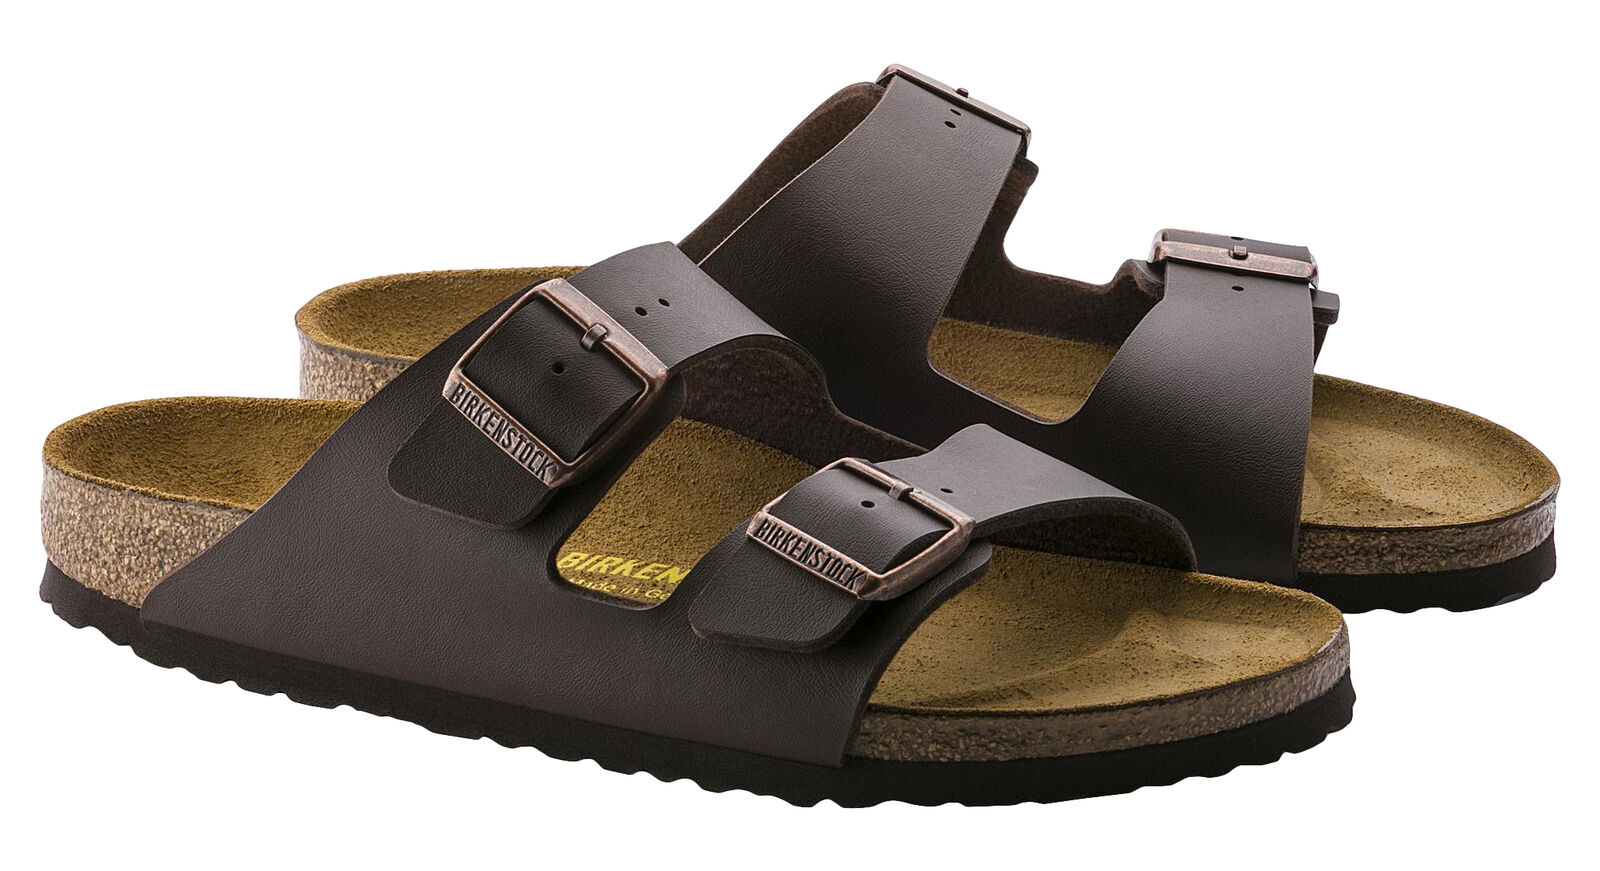 56e757a15ab Birkenstock Arizona Double Strap Men s Sandals - Size 8 D(M) US